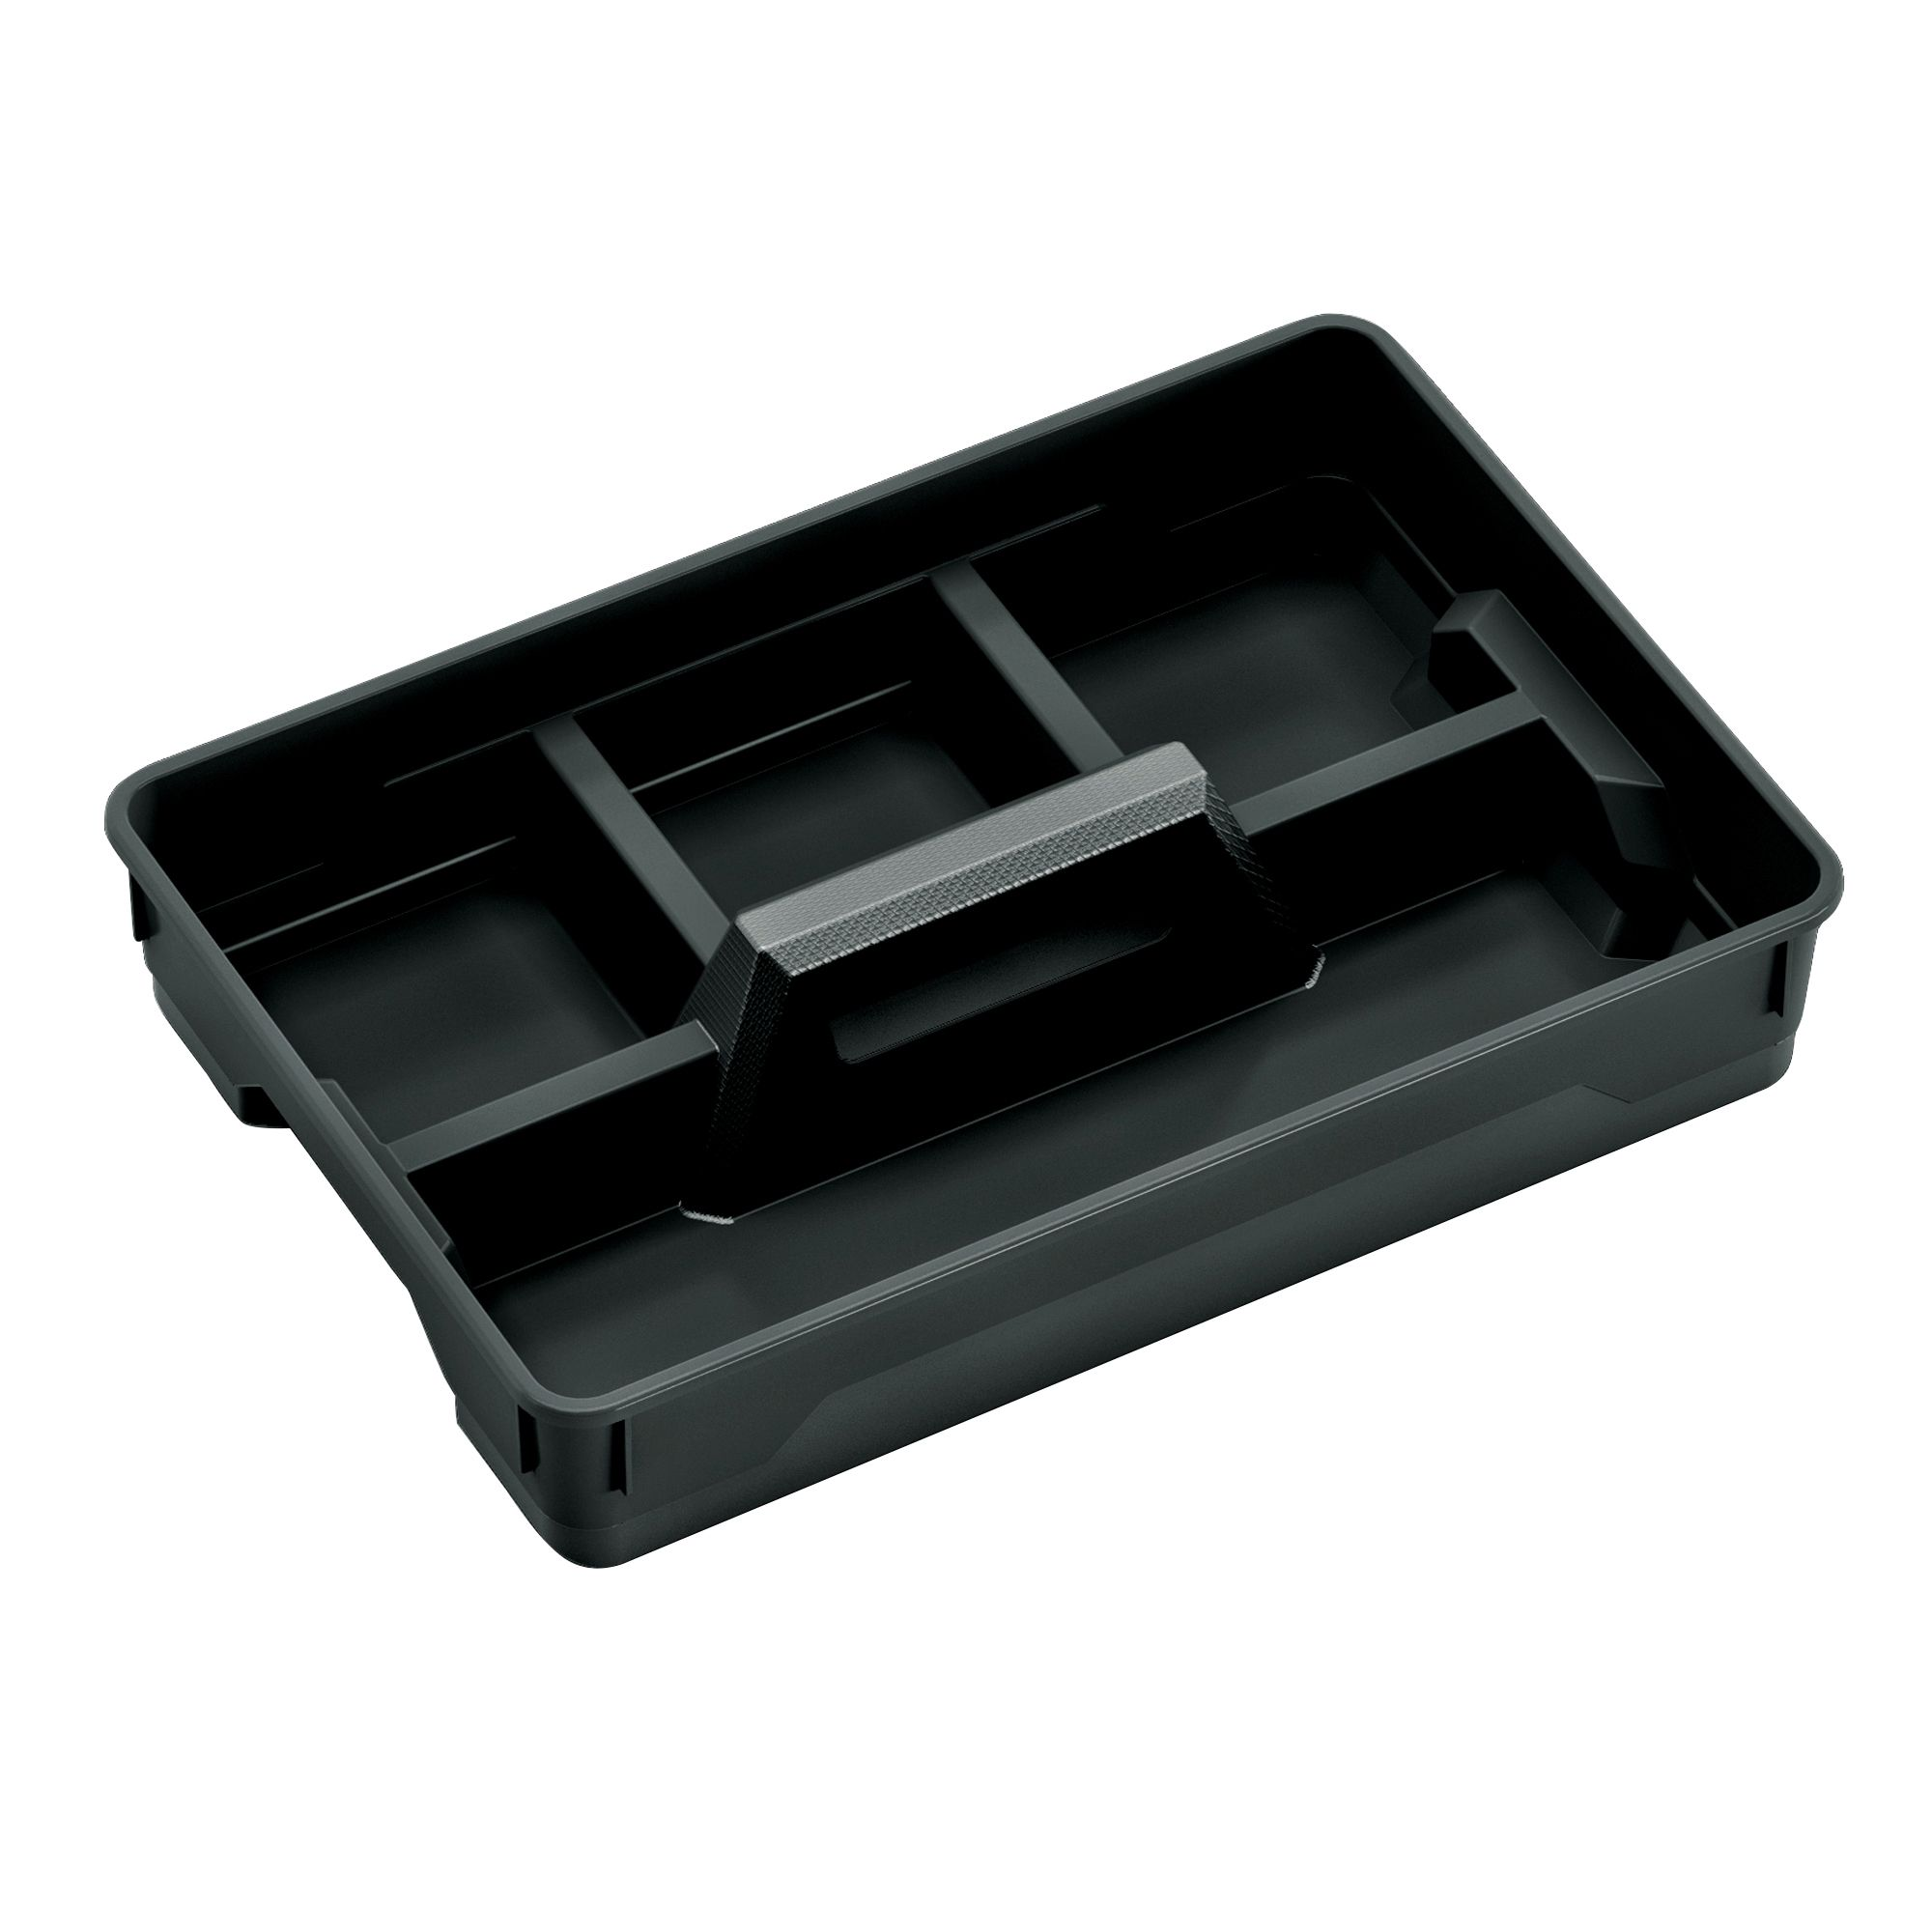 Form Flexi Store Black Small Plastic Organiser Tray